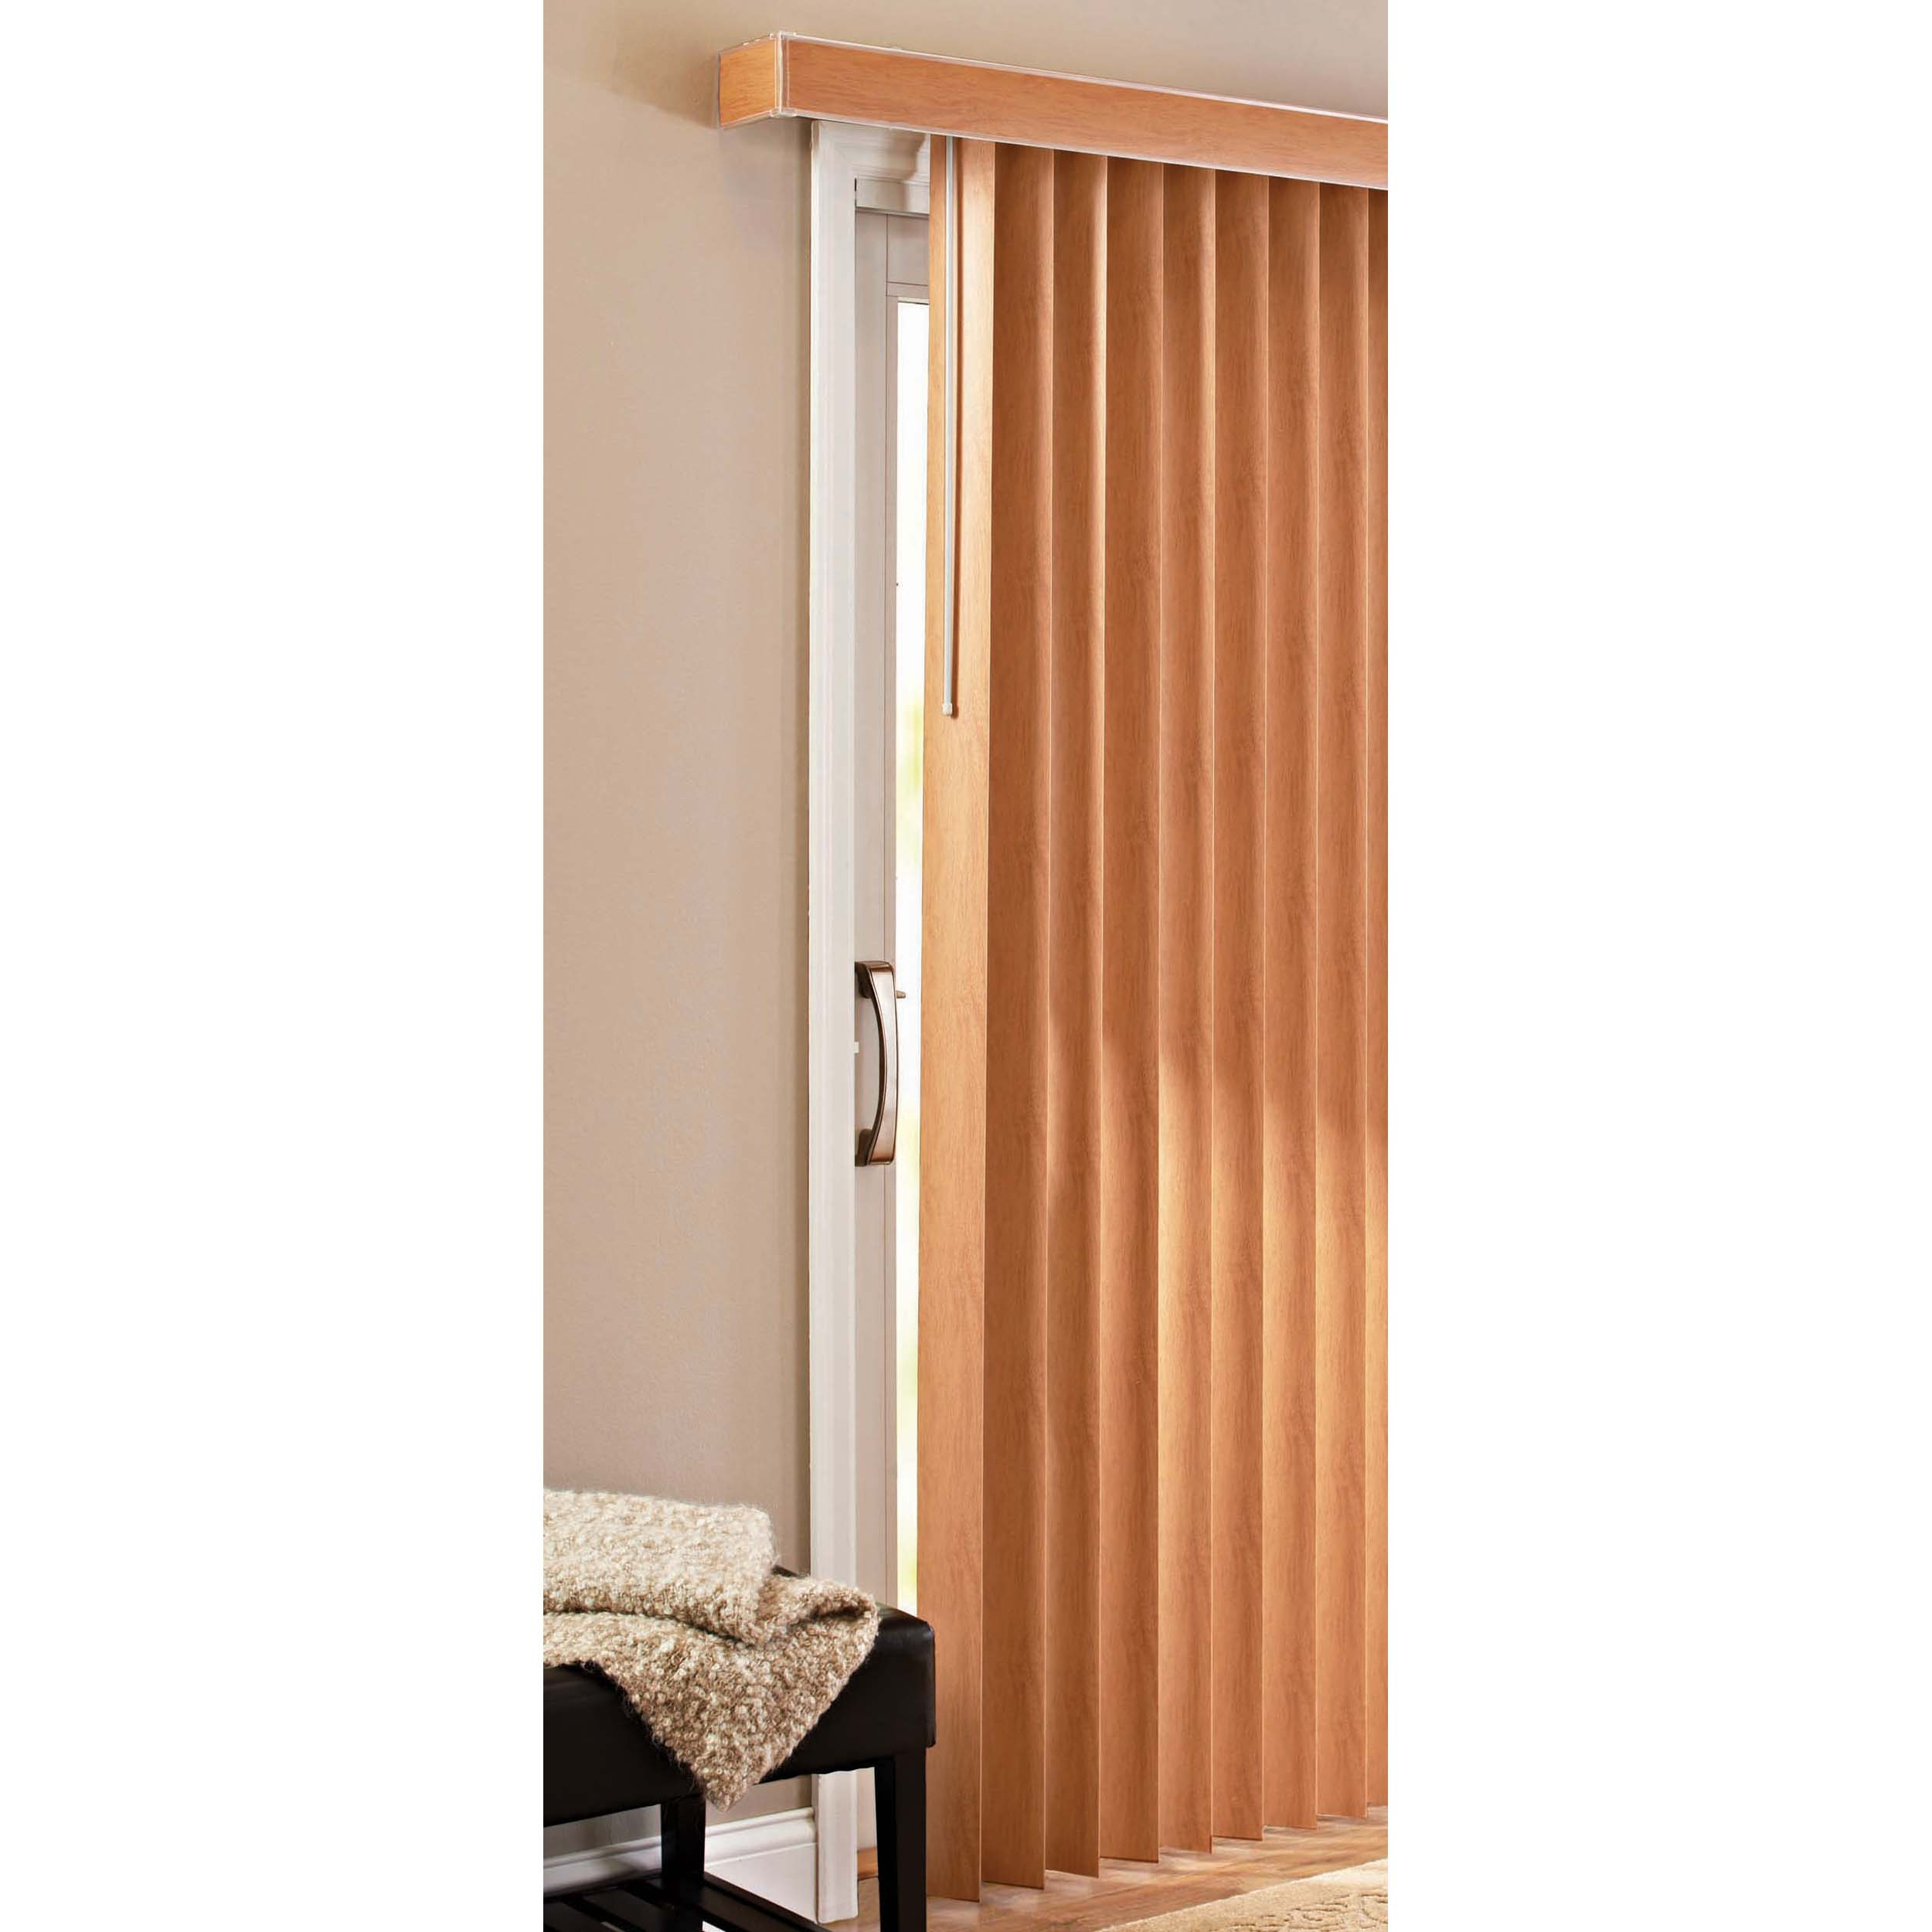 Better Homes & Gardens Vertical Blinds, Printed Colors